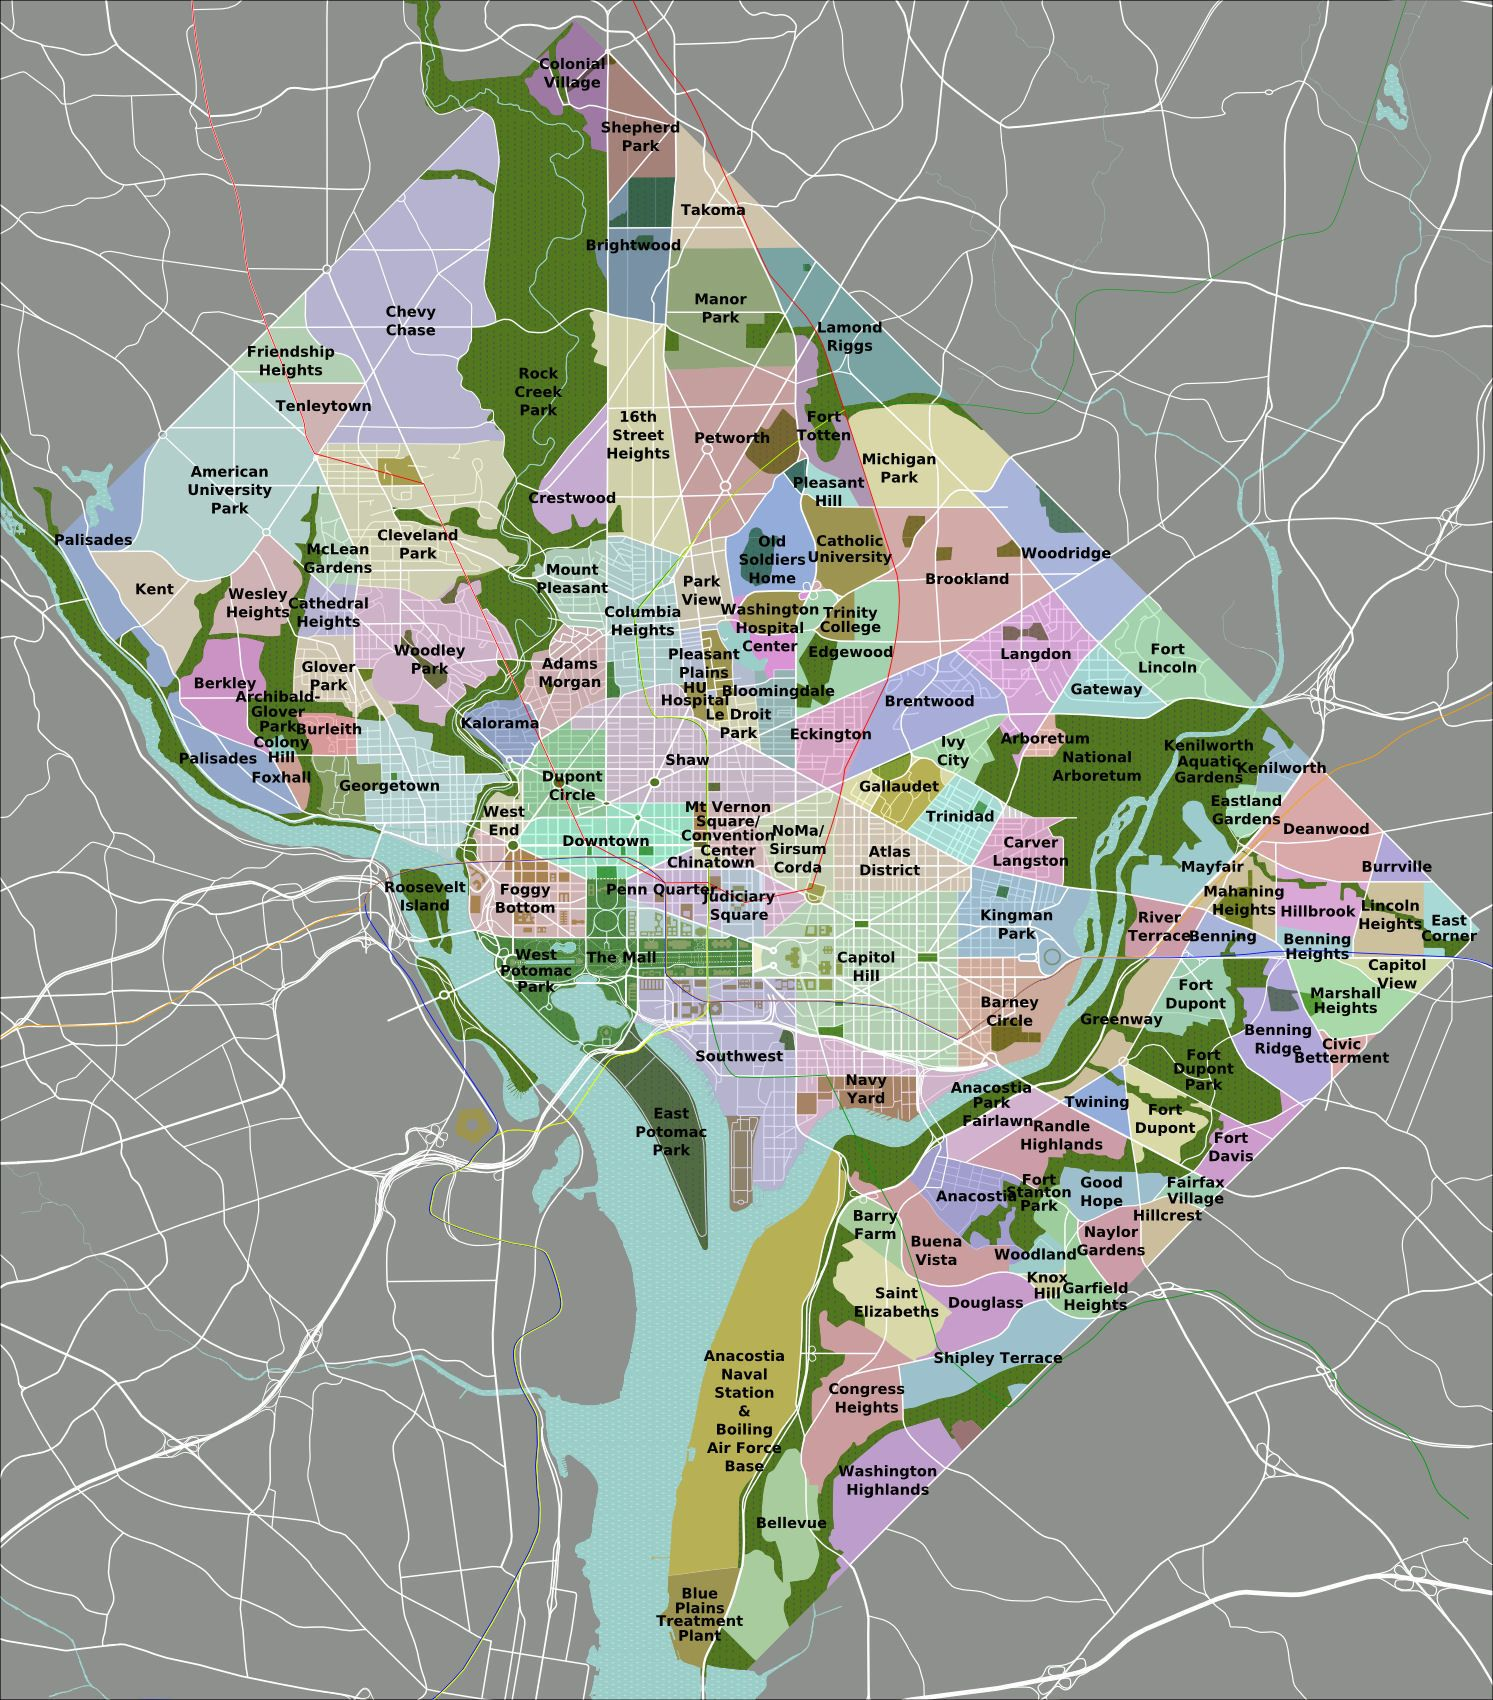 Thrillist Just Created The Most Accurate DC Metro Map Ever - Washington dc gis map